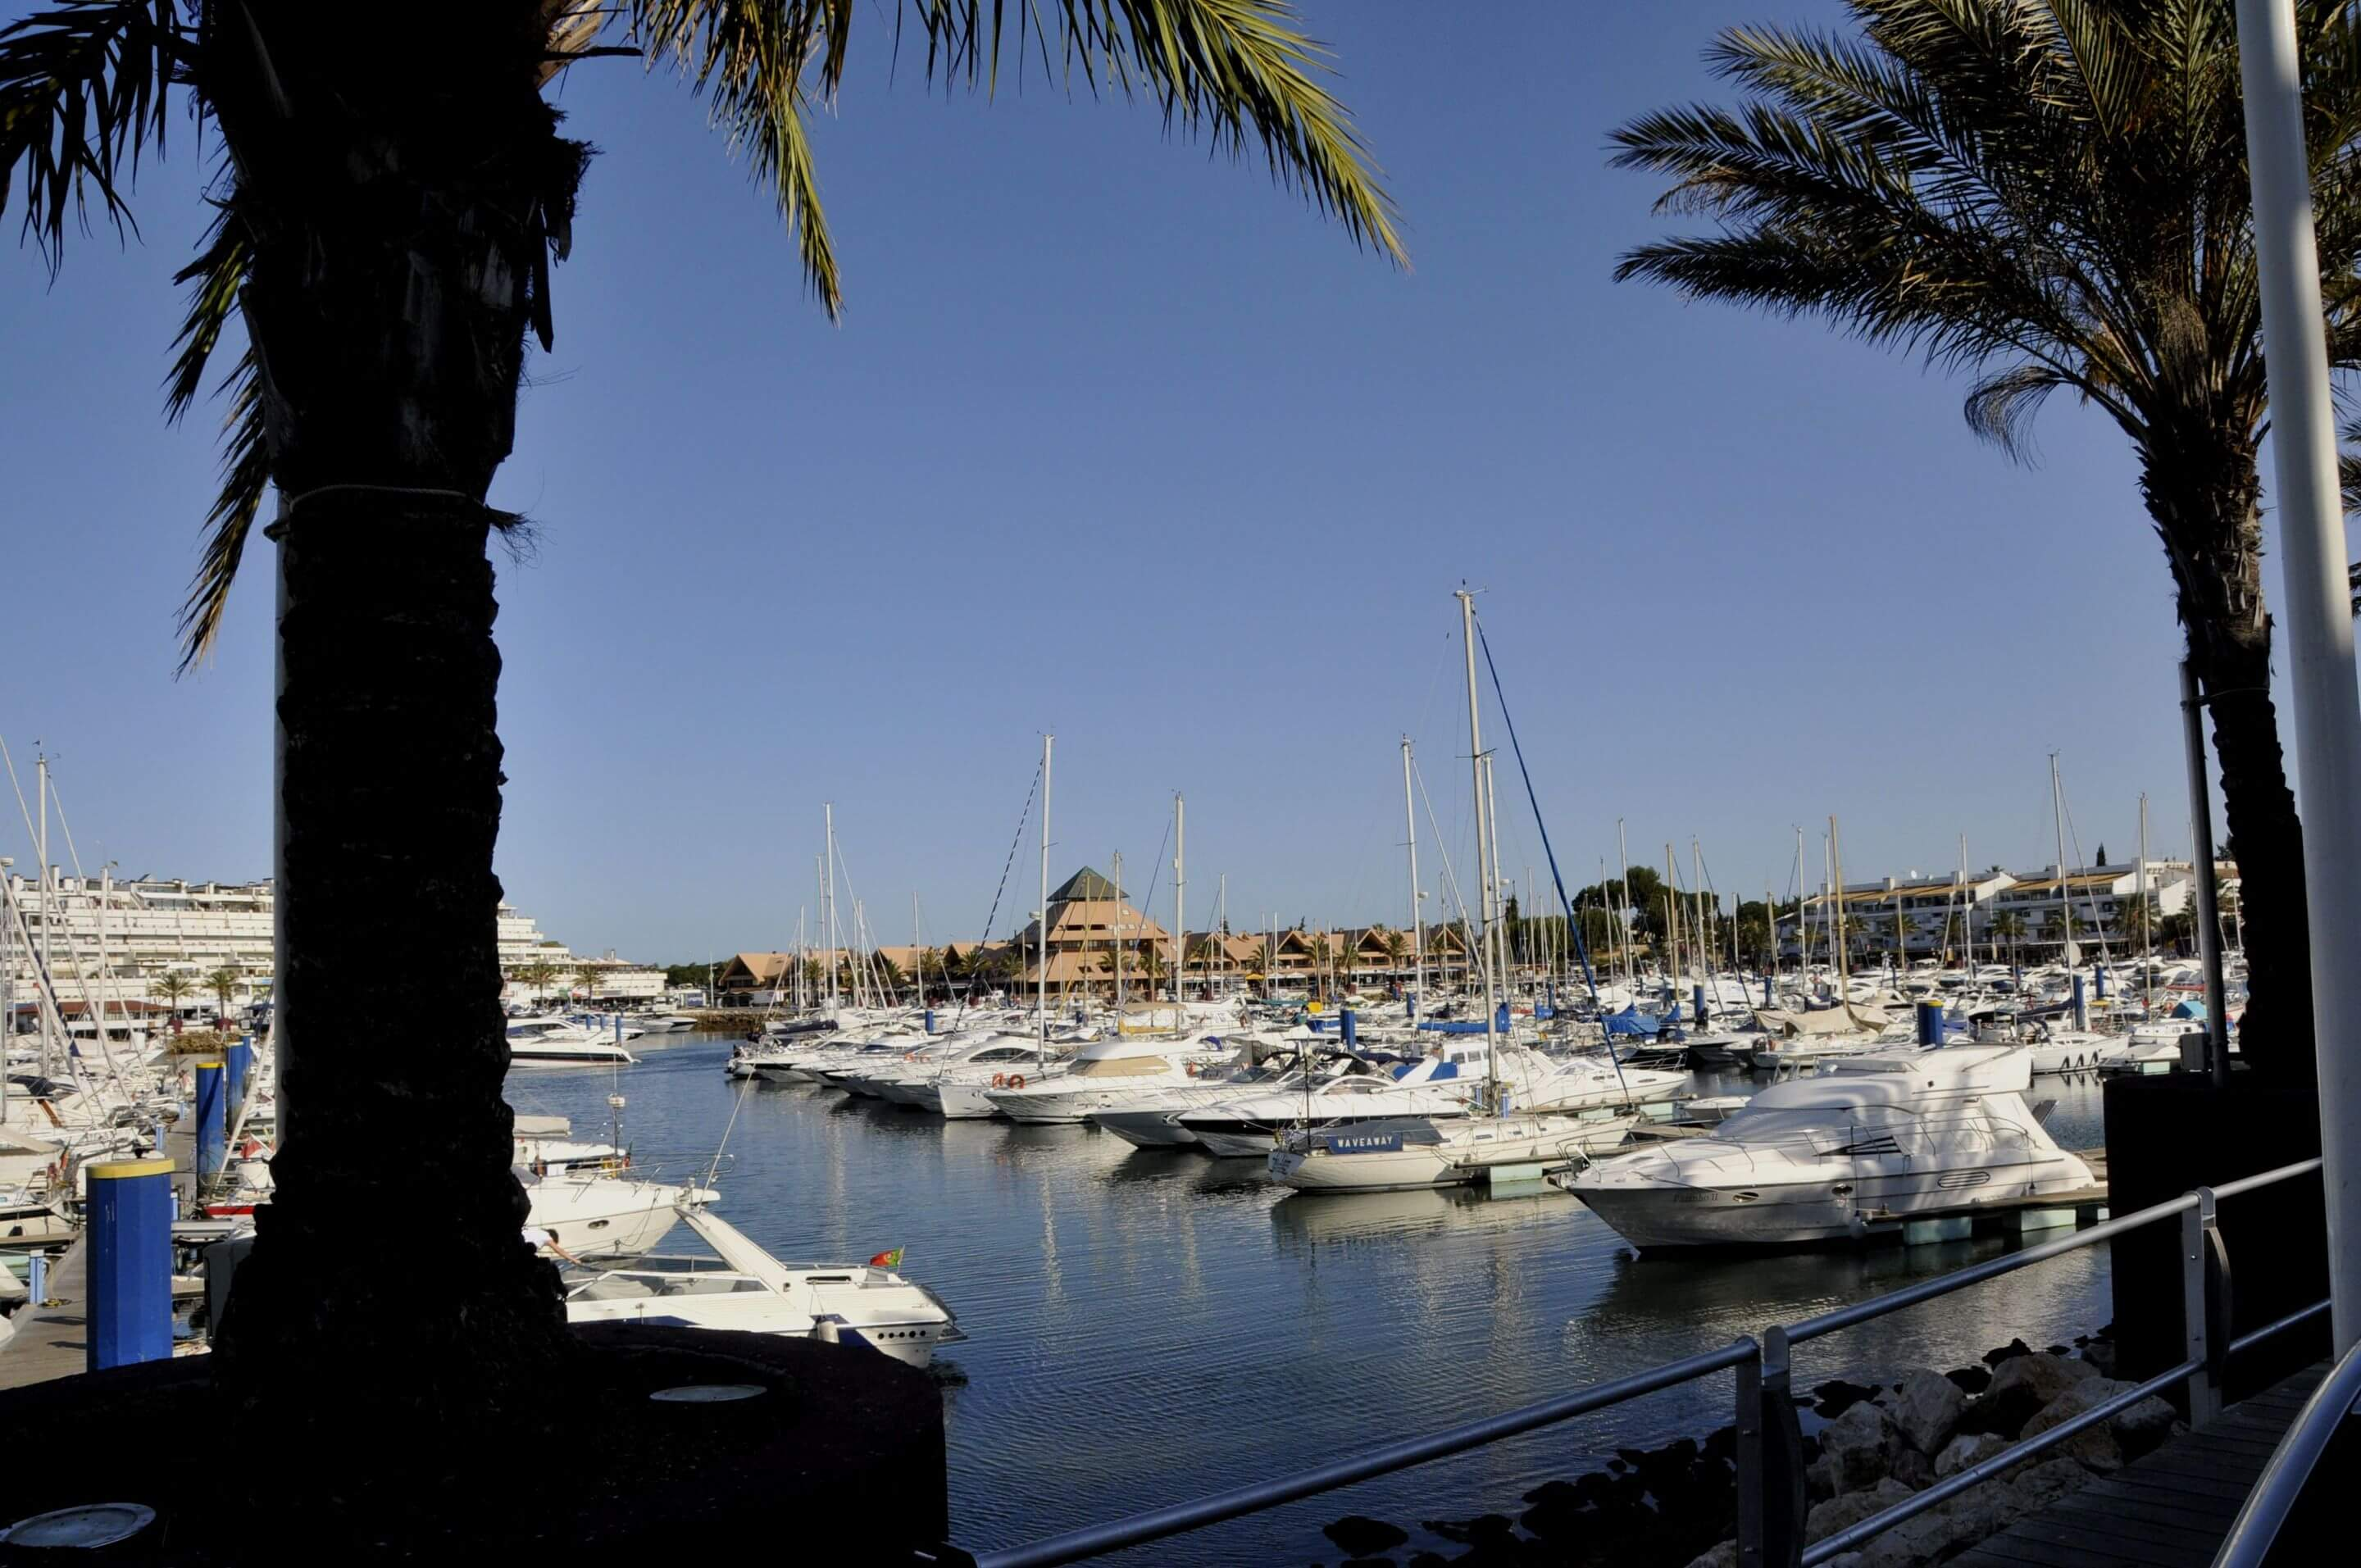 Case vacanze in affitto a Vilamoura